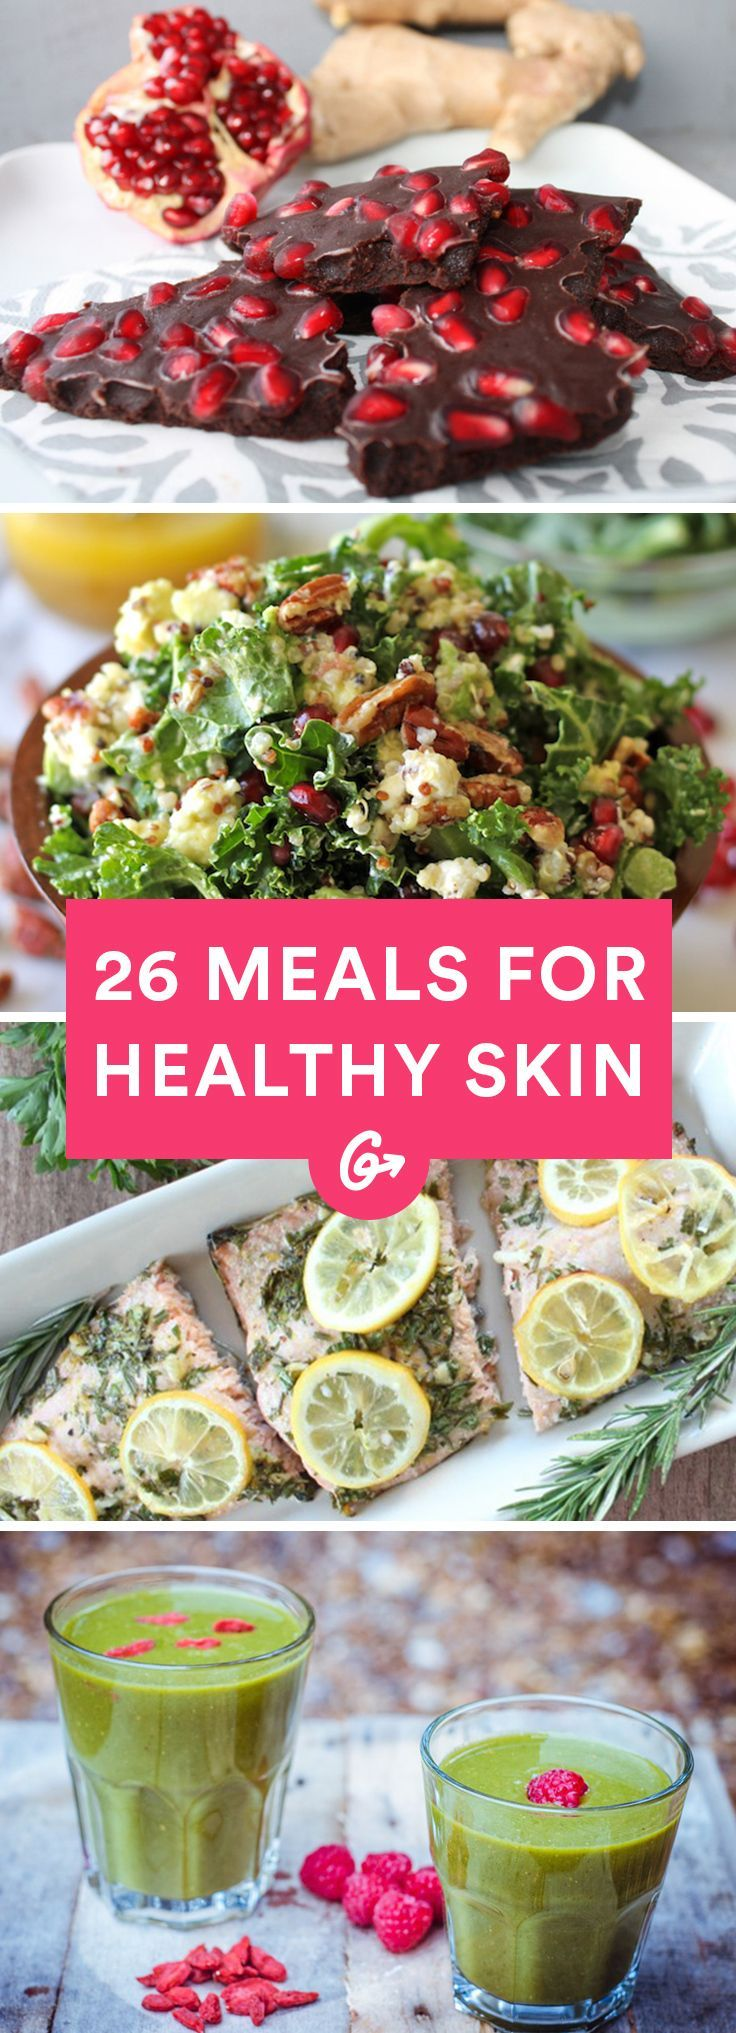 Achieving blemish-free, glowing skin may seem like a daunting task, but the solution may be no further than your kitchen. These 26 meals are packed with scientist-approved healthy ingredients.